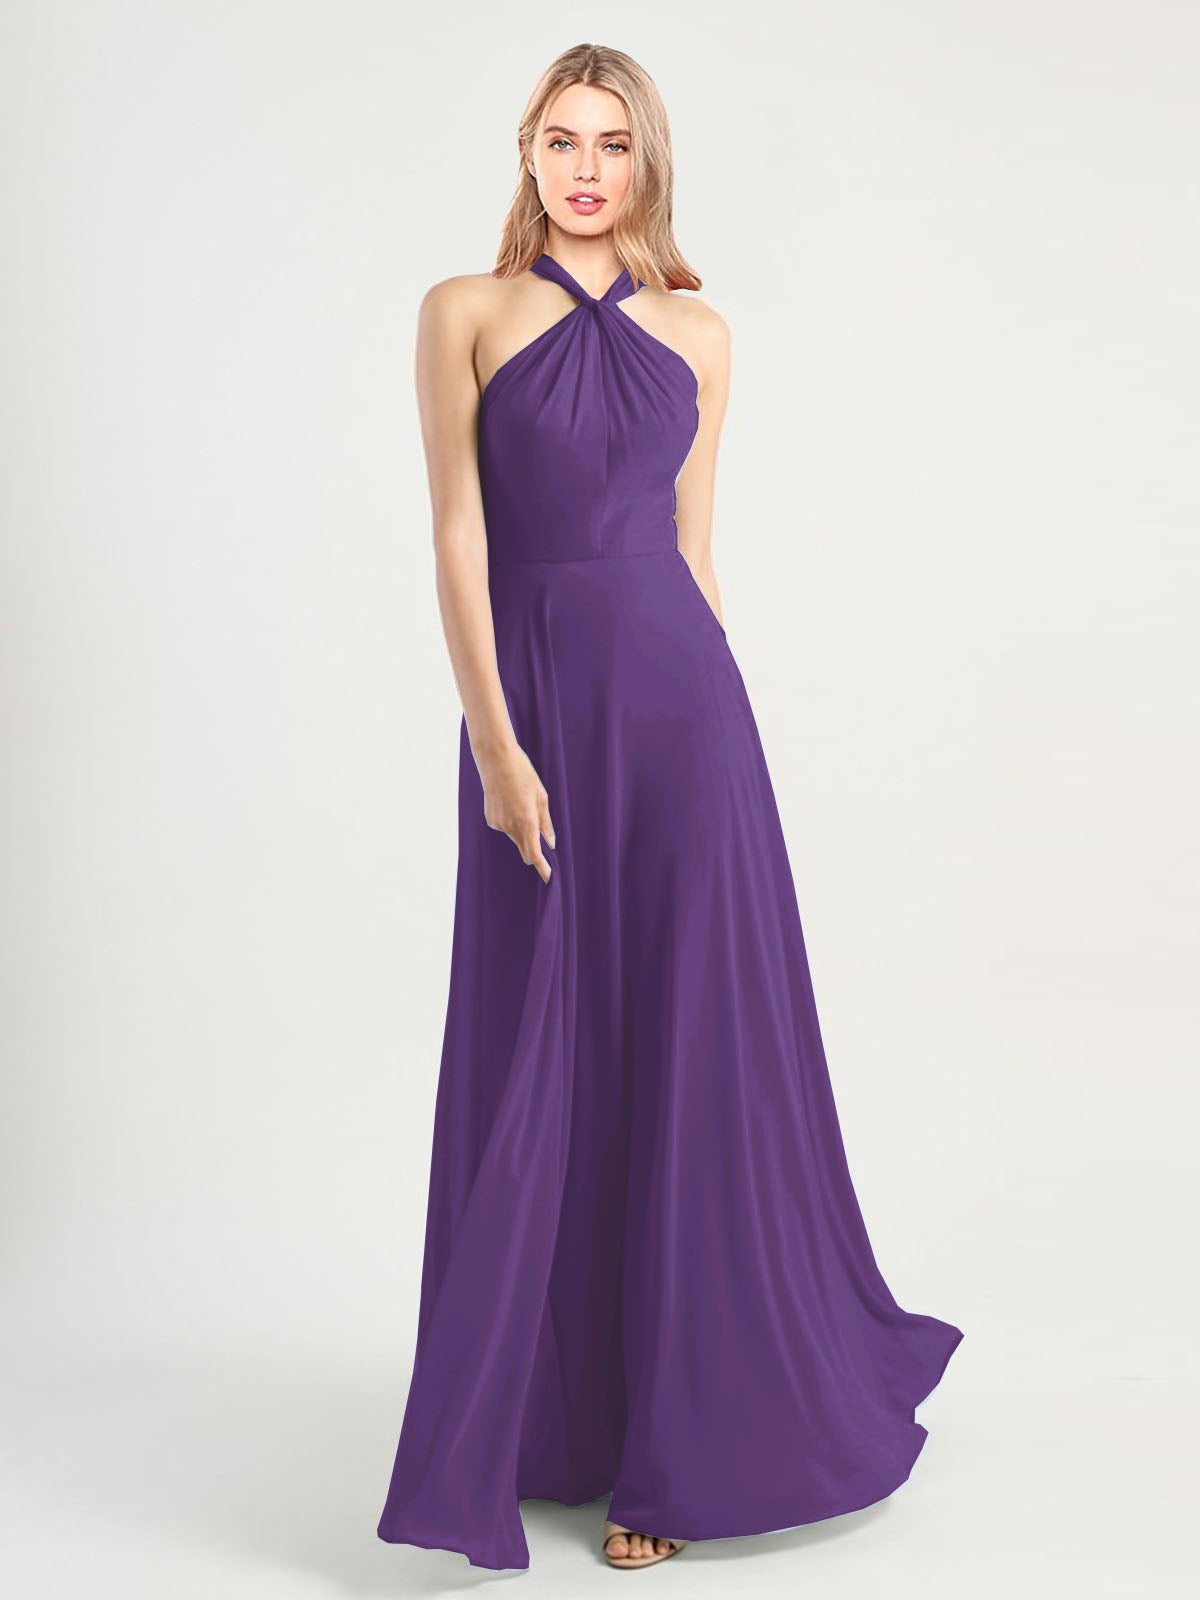 Long A-Line High Neck, Halter Sleeveless Plum Purple Chiffon Bridesmaid Dress Yoli